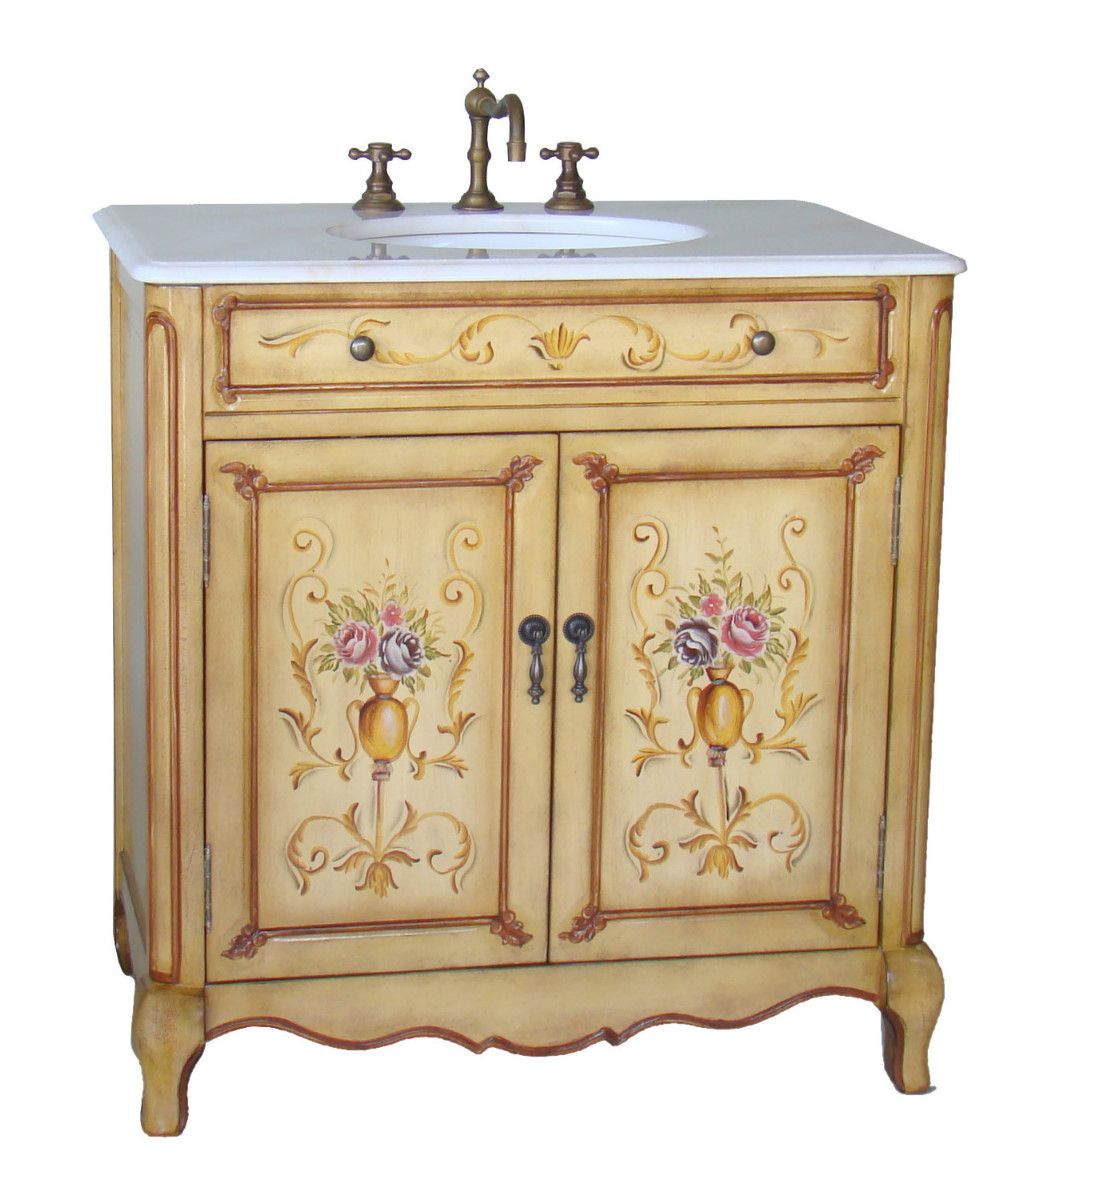 33 bathroom vanity - Adelina 33 Inch Antique Hand Painted Bathroom Vanity